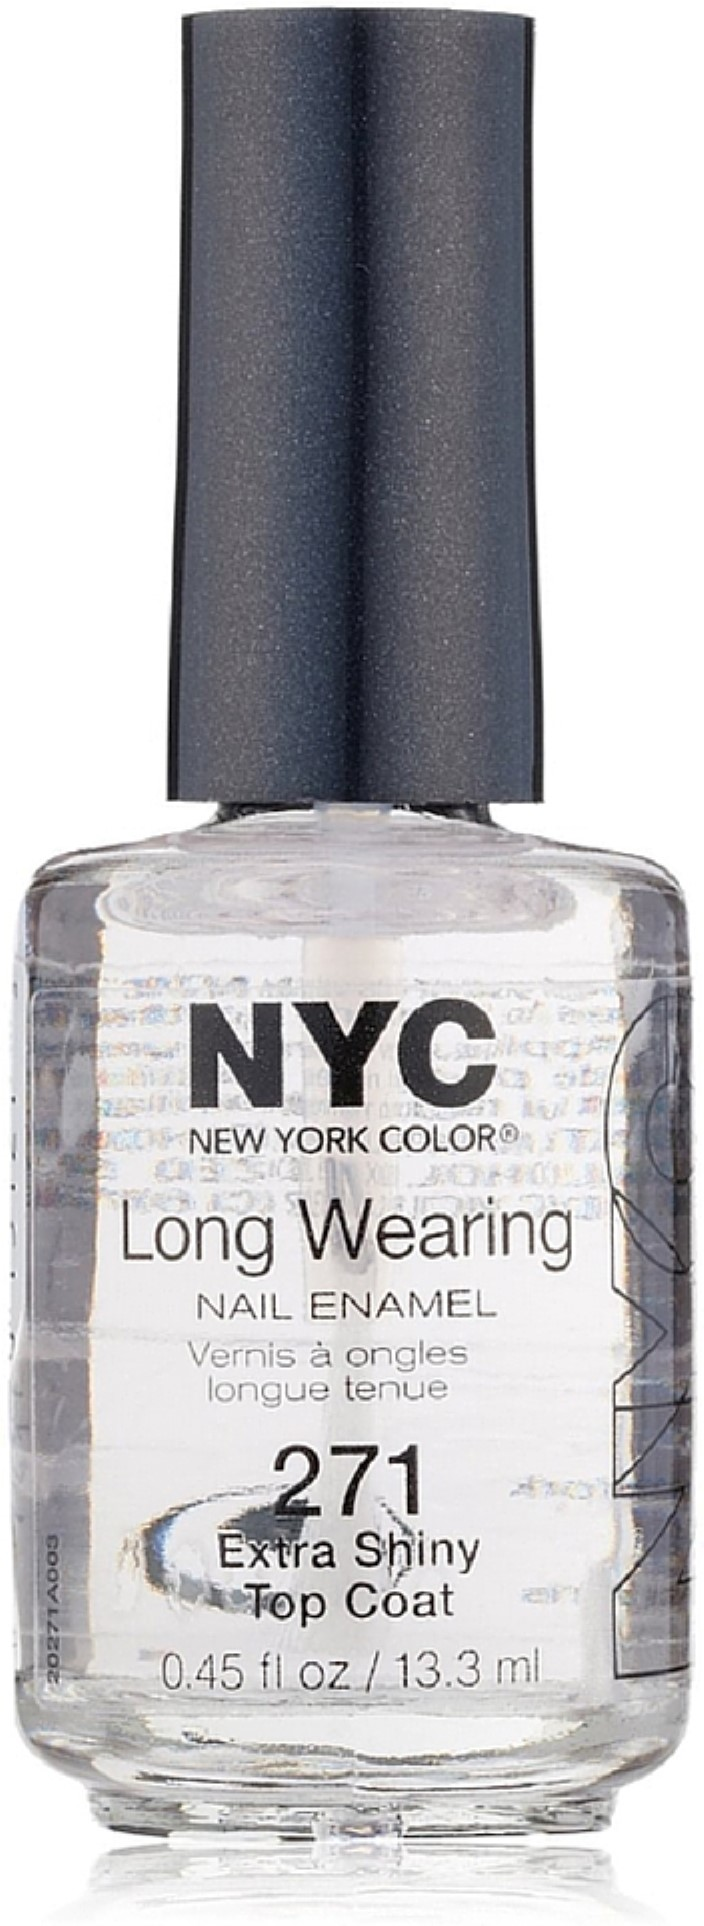 nyc york color nail polish